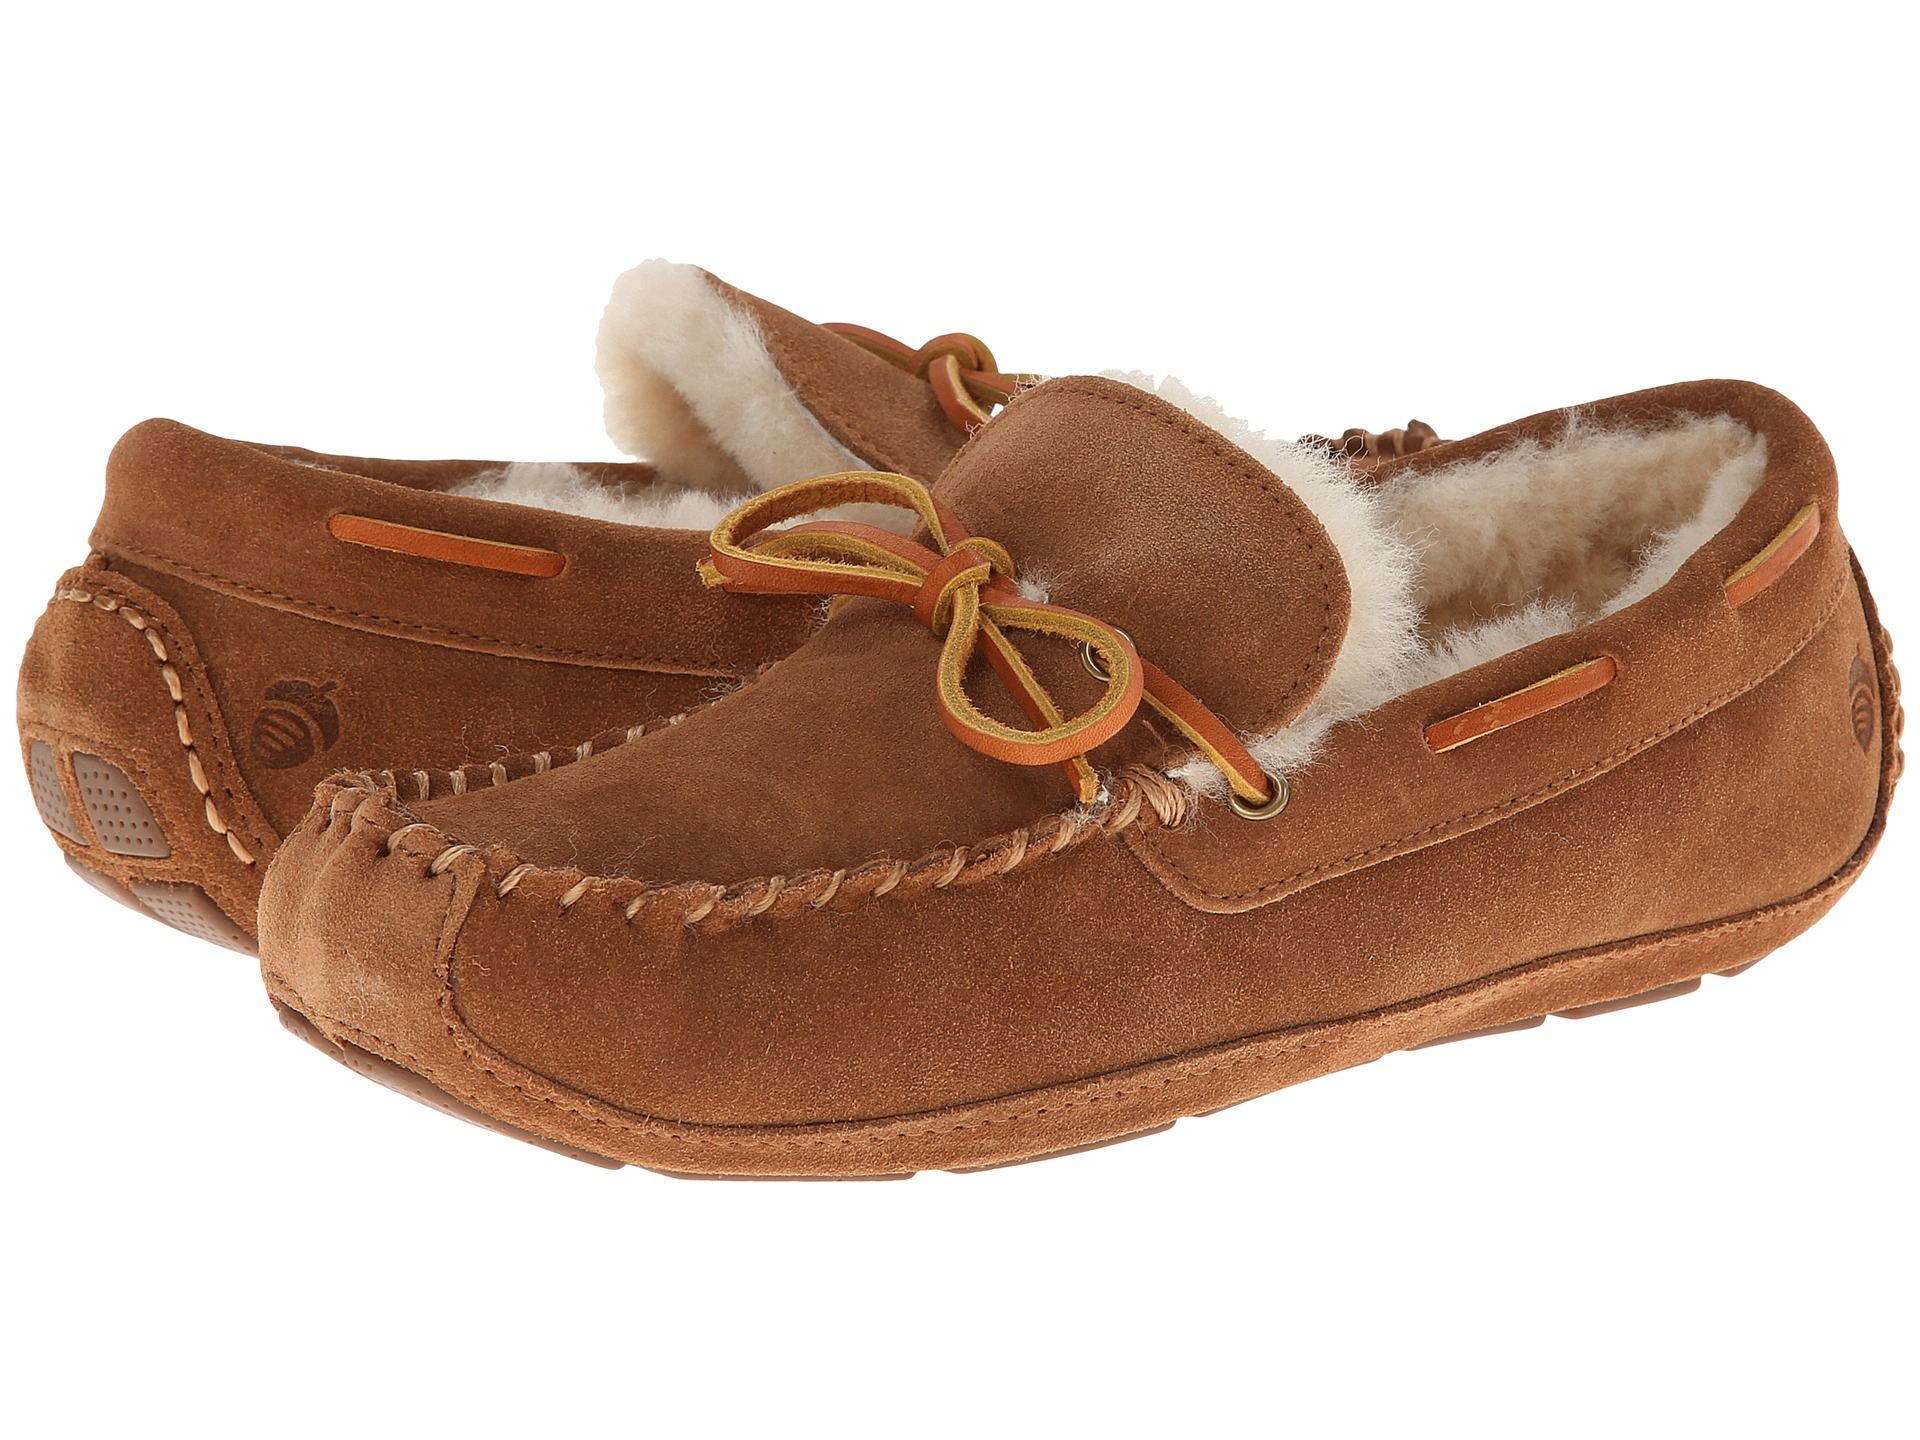 a4e2b2b39a36 Snap Acorn moxie Moccasin Slipper in Brown for Men Lyst photos on ...